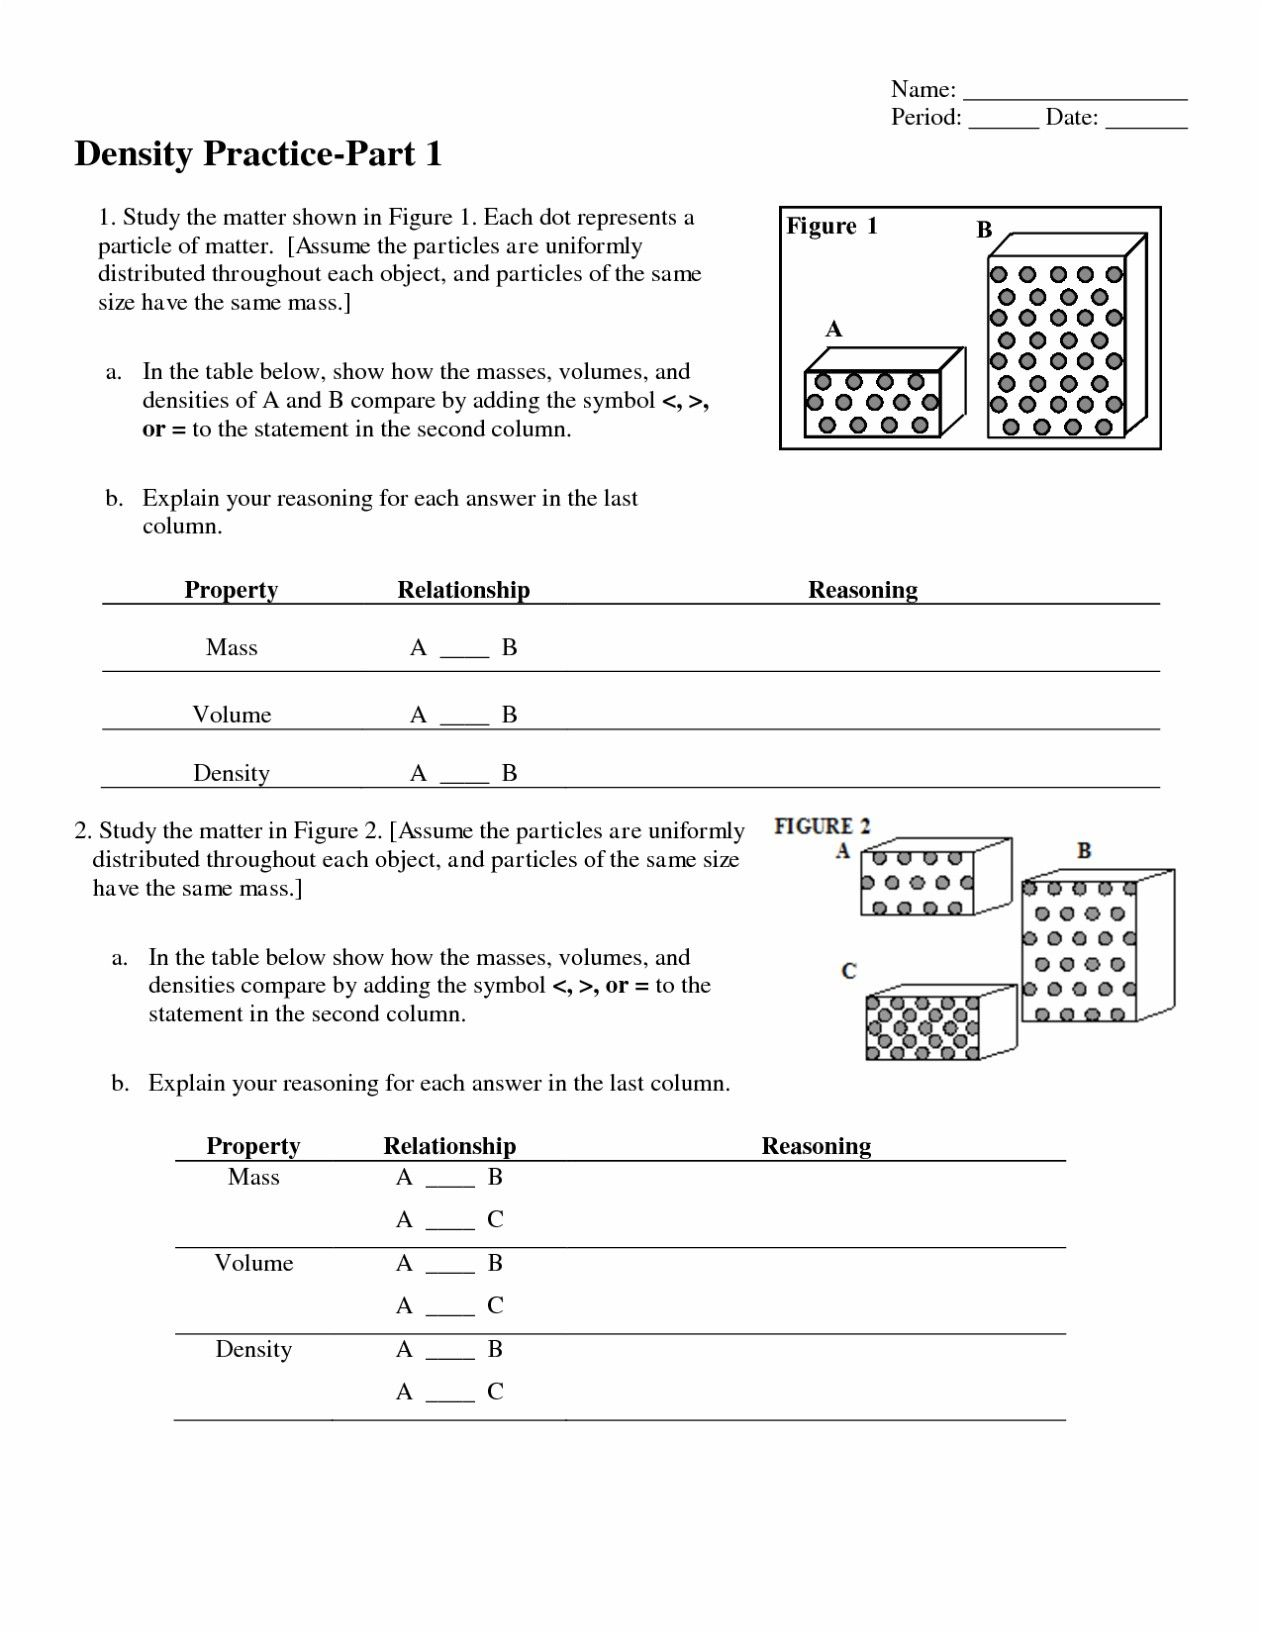 Chemistry Unit 1 Worksheet 3 Mass Volume And Density